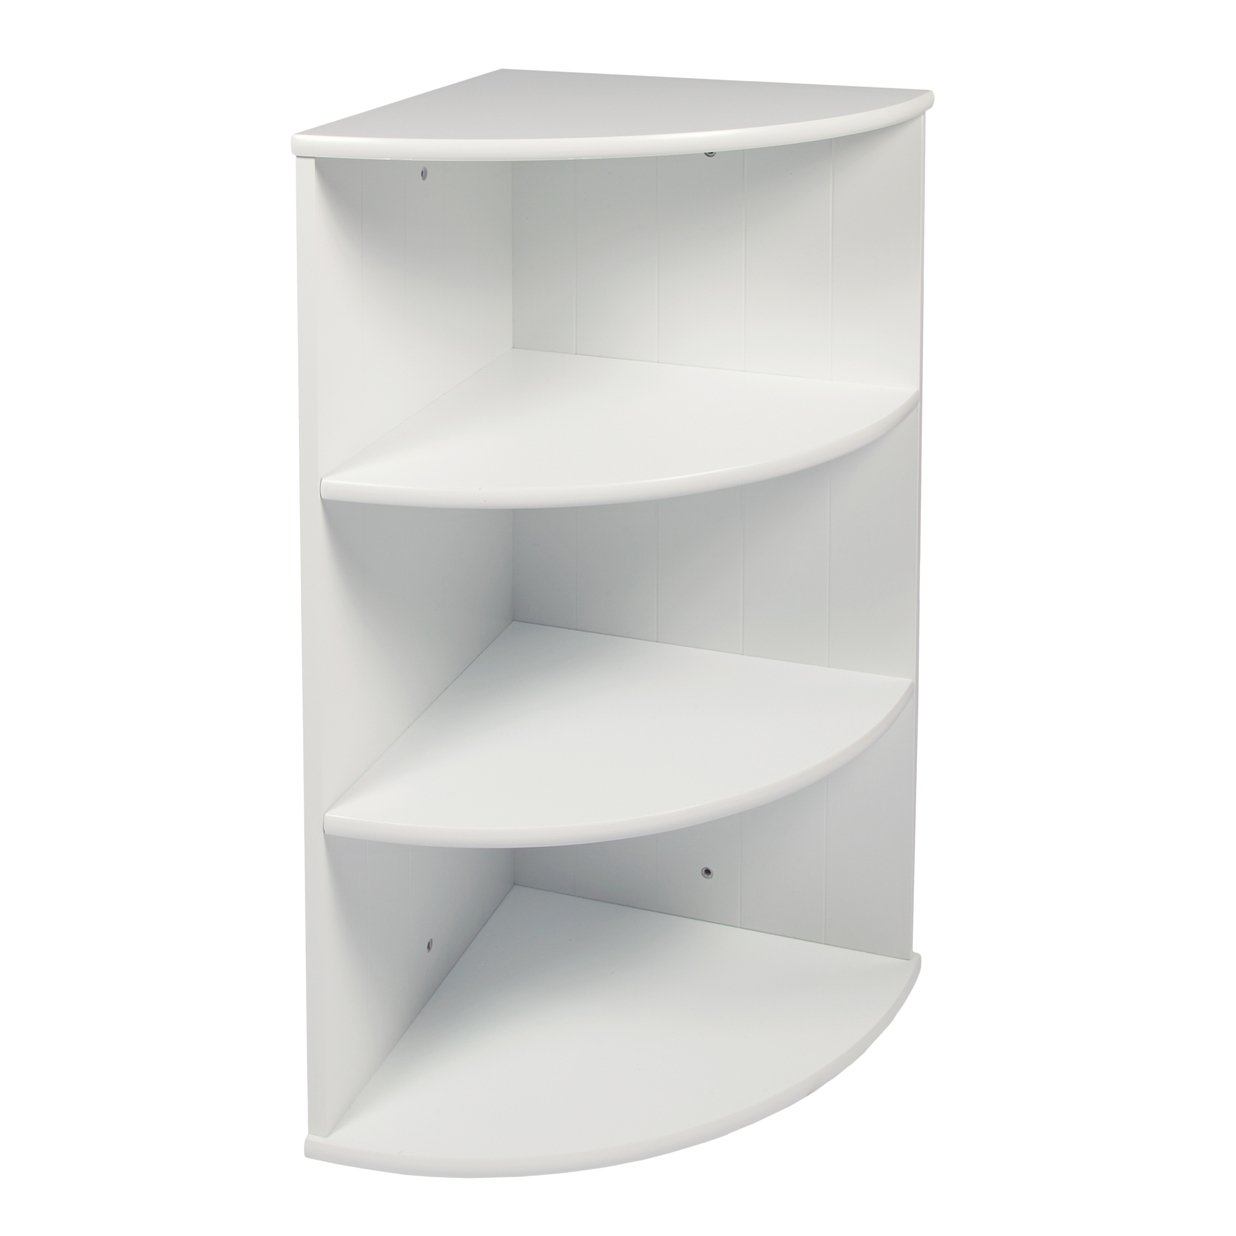 wall mounted corner cabinet woodluv mdf 3 tier wall mounted corner shelf bathroom 6946